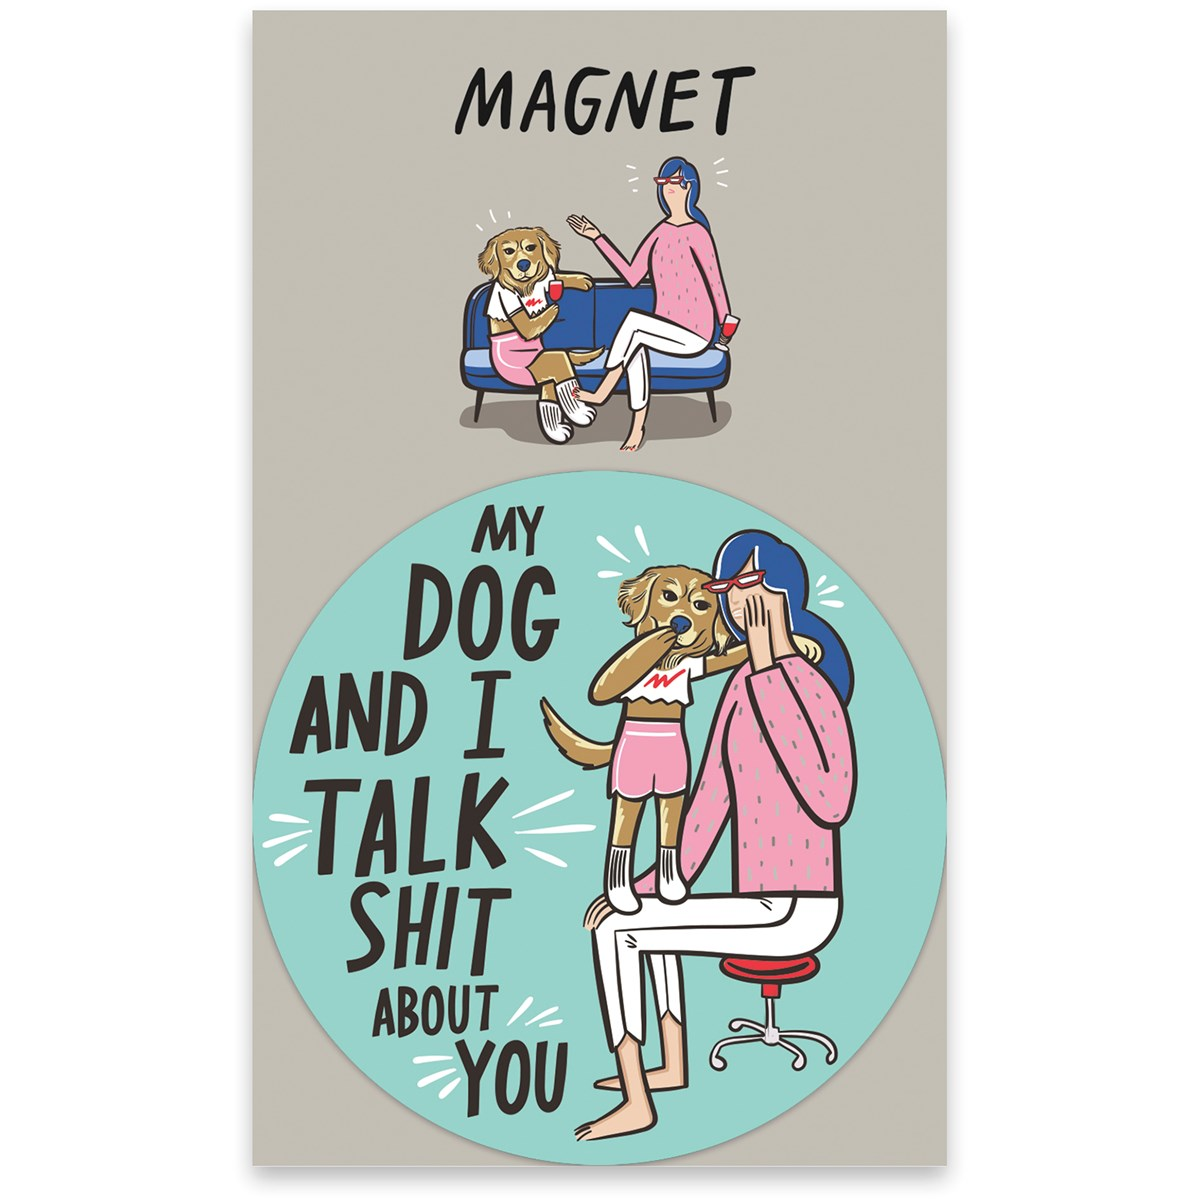 "Magnet - My Dog And I Talk About You - 3"" Diameter, Card: 3"" x 5"" - Magnet, Paper"